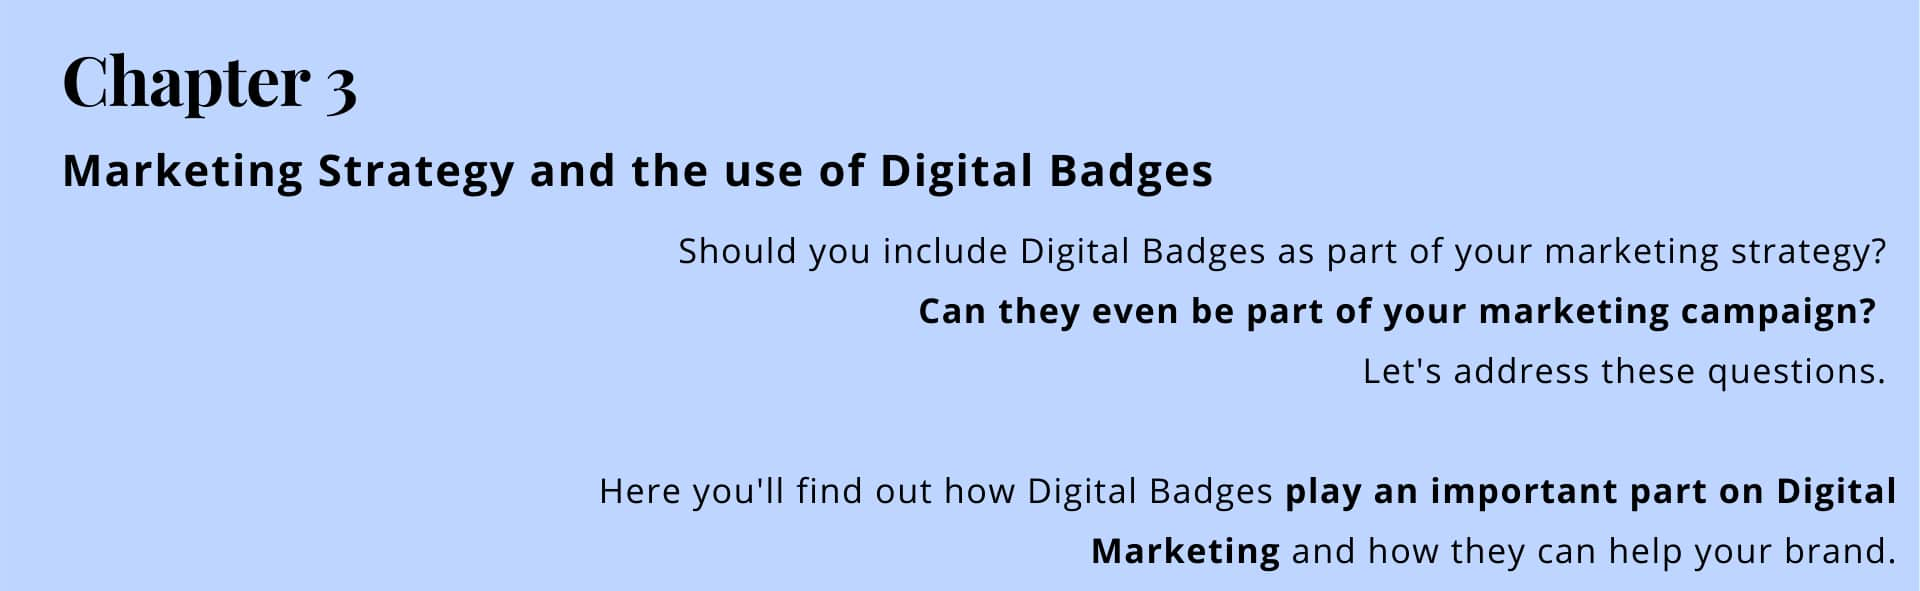 Chapter 3: using digital badges as part of your marketing strategy